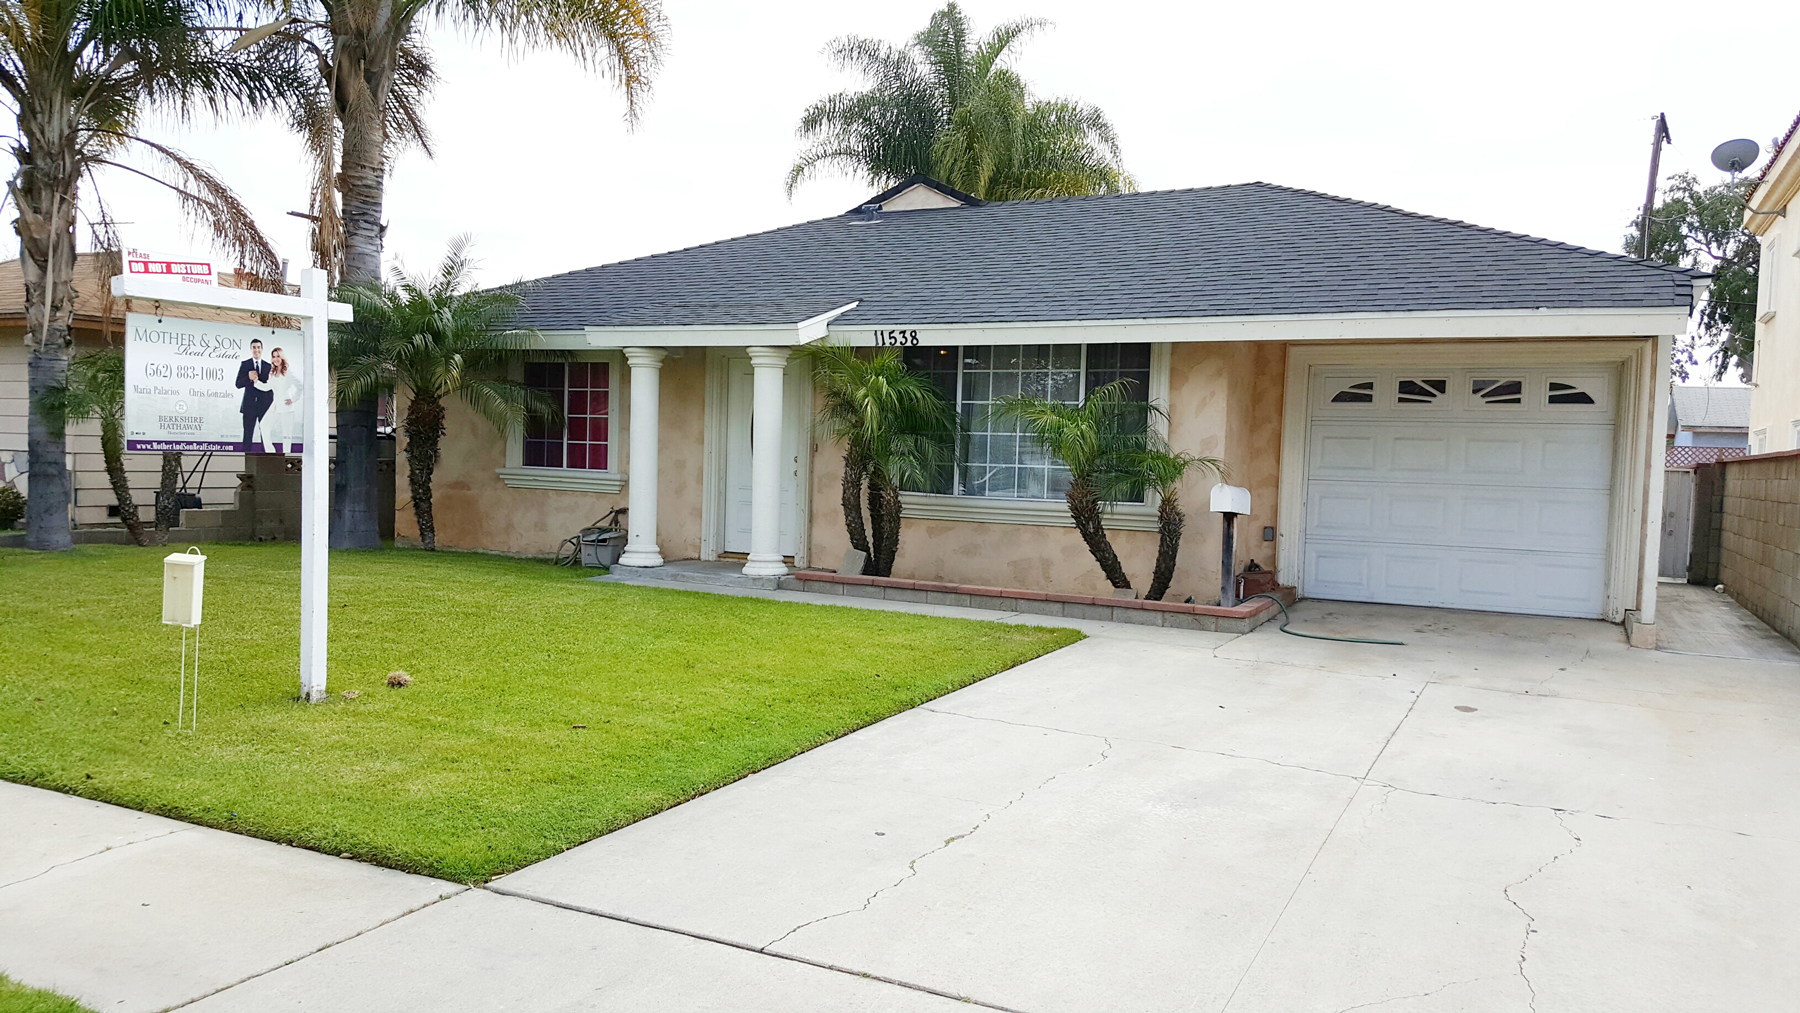 SOLD | 3 BED 2 BATH 1,178 SQUARE FEET CLICK FOR MORE DETAILS